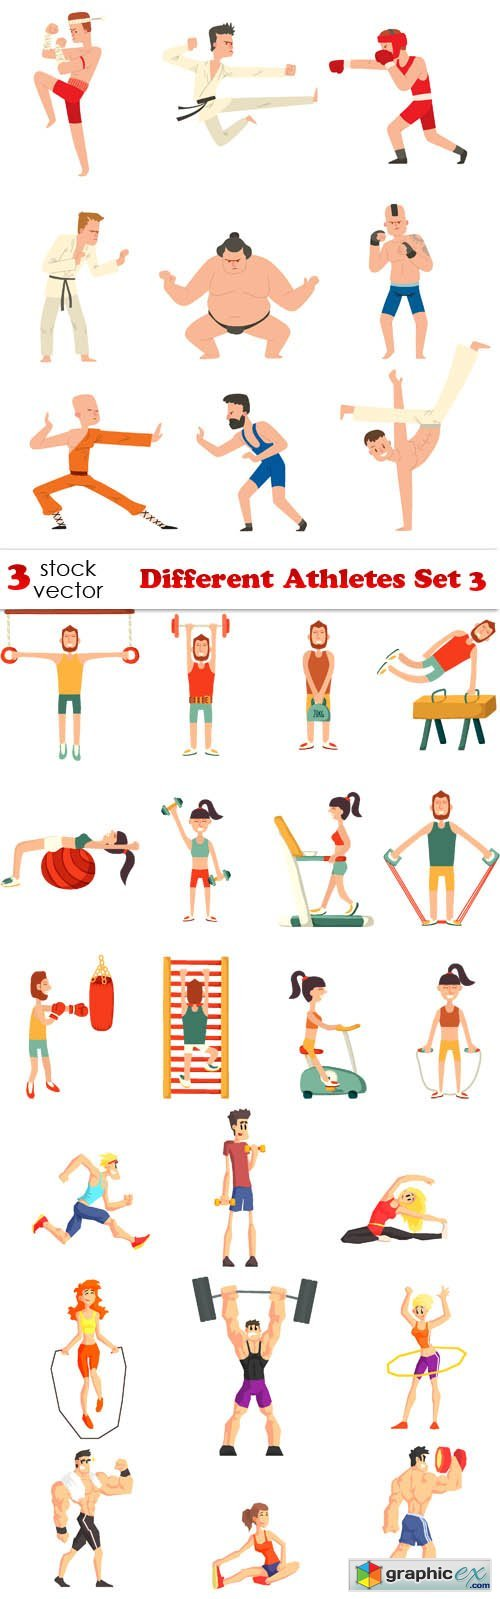 Different Athletes Set 3